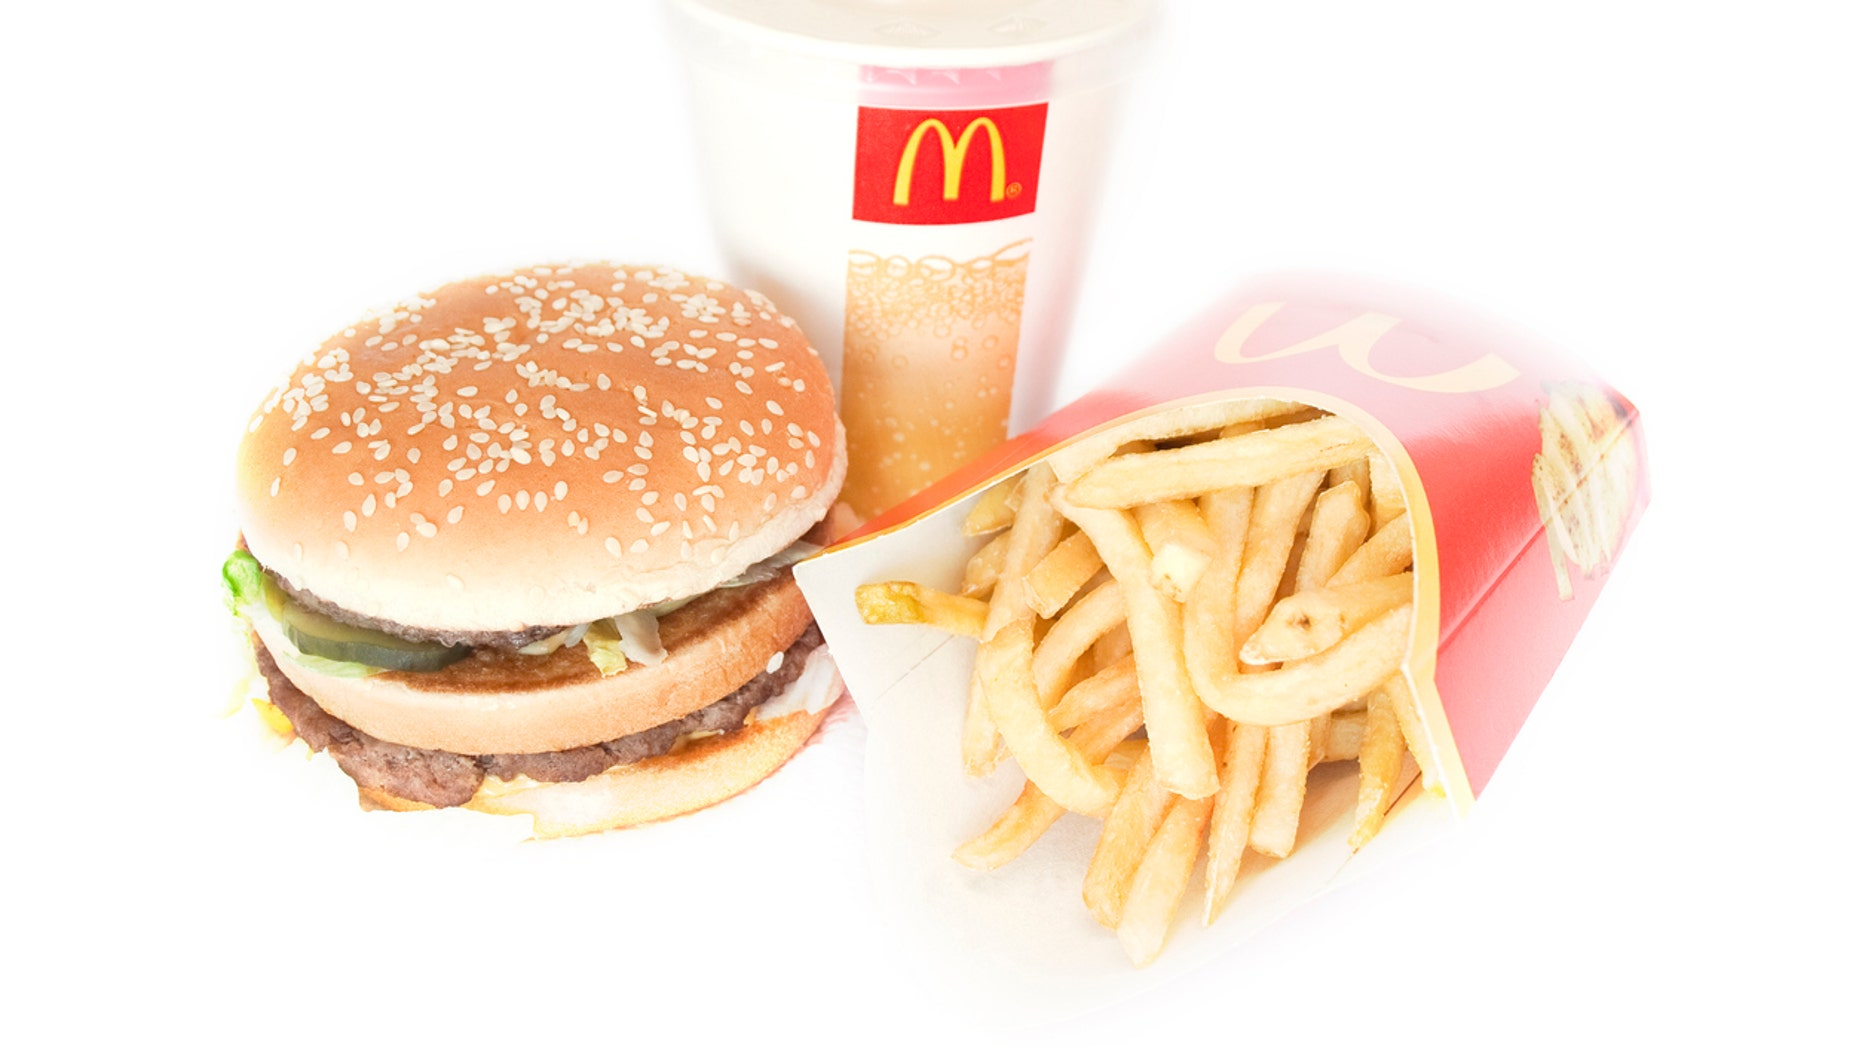 One drunk customer threatened to fight a manager after being served a Big Mac with onions.